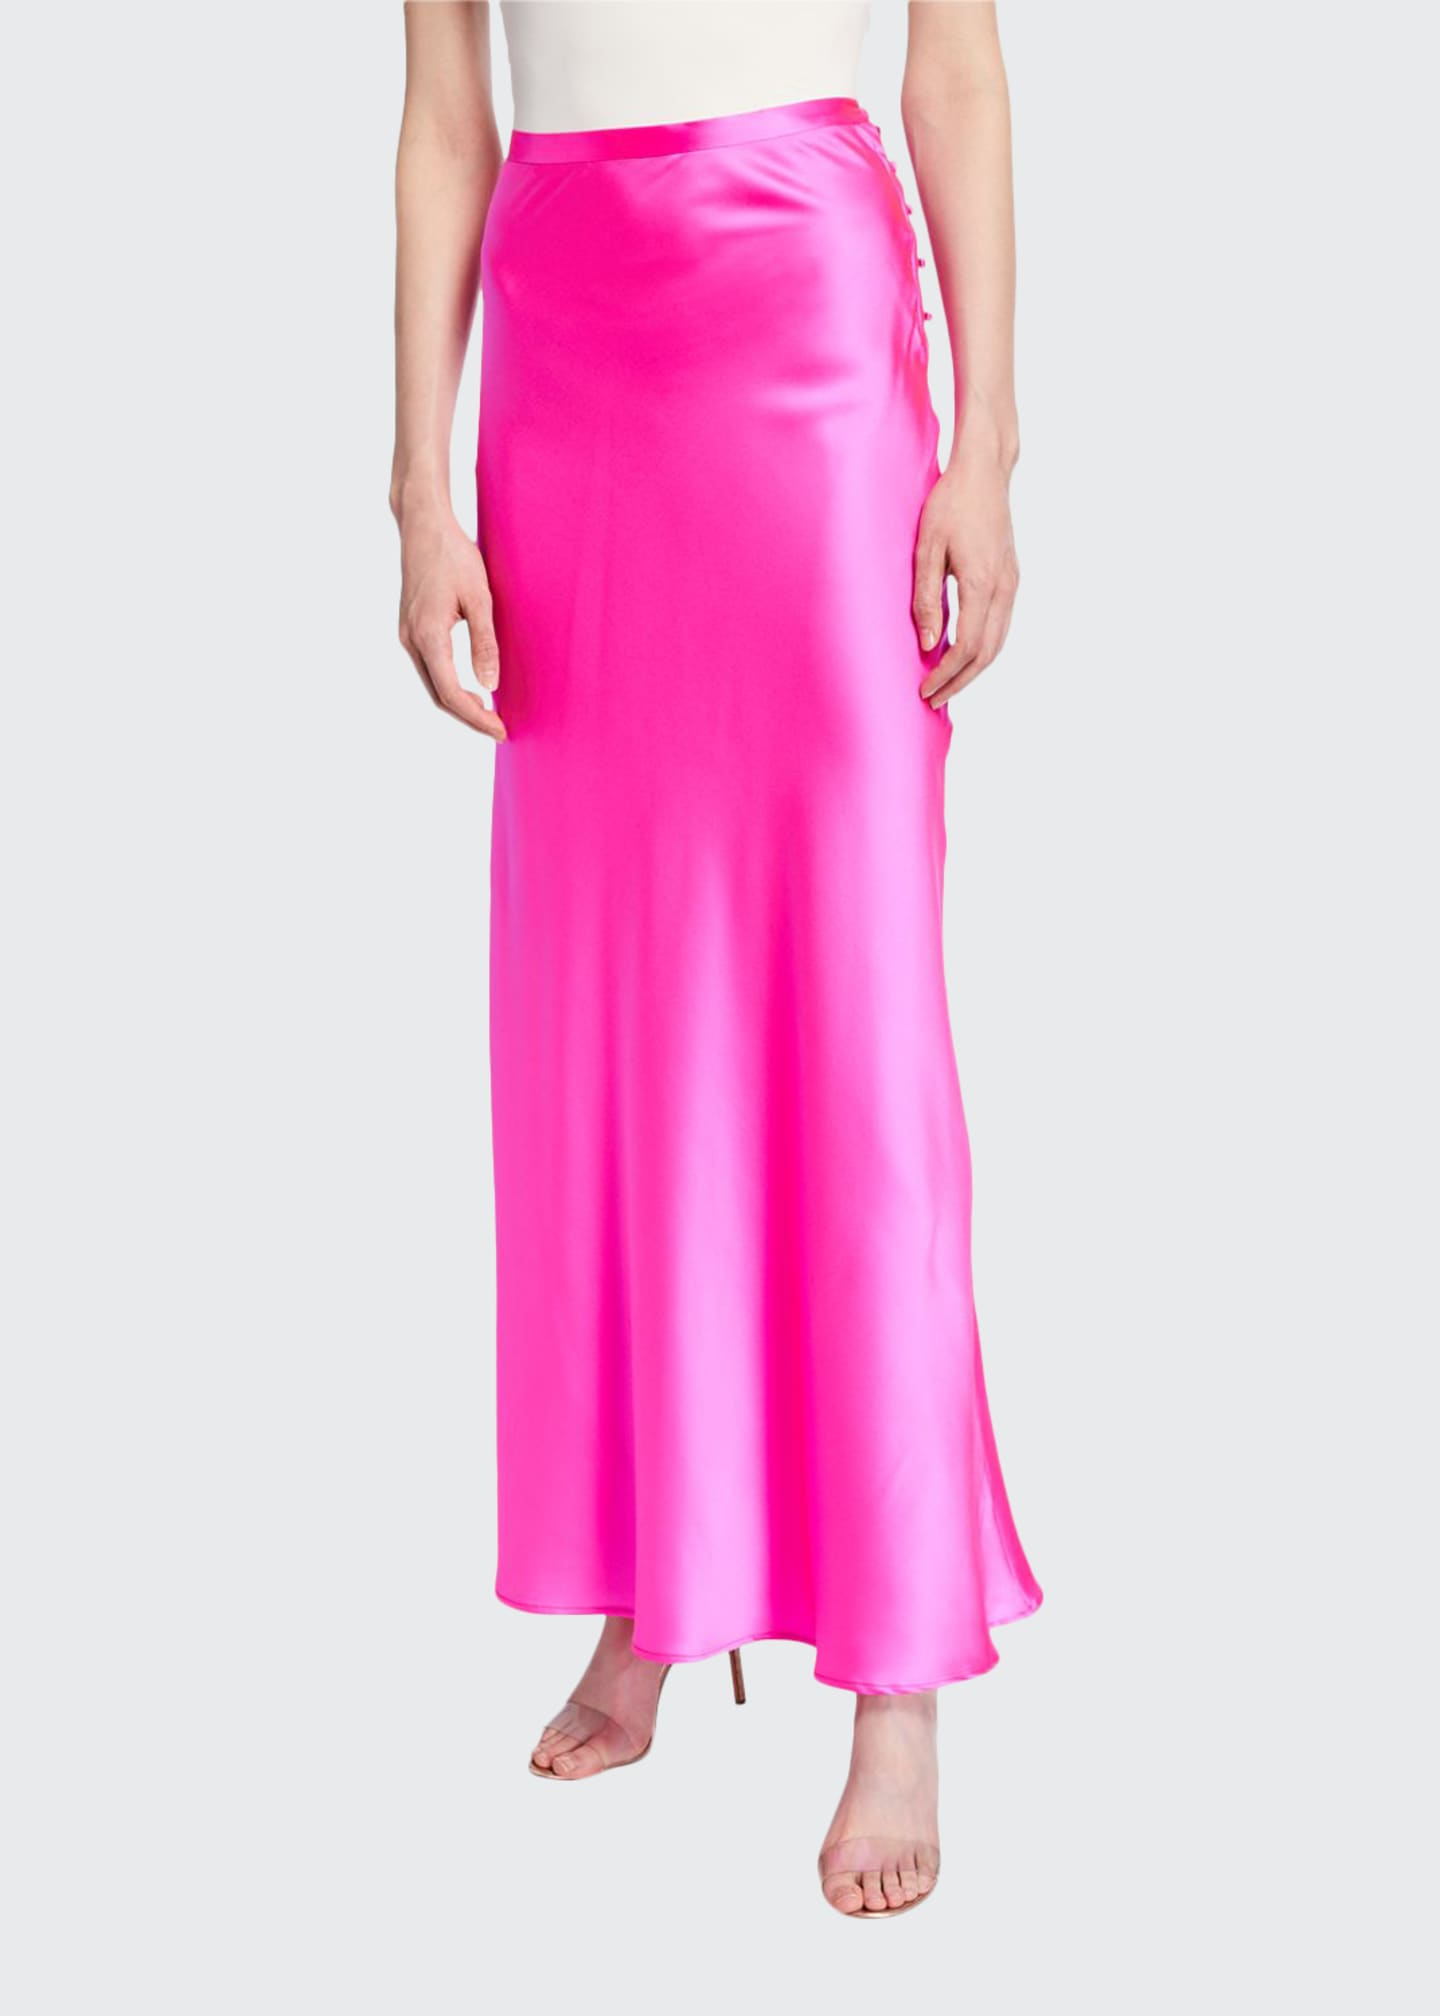 BERNADETTE Florence Silk Satin Bias-Cut Ankle-Length Skirt, Pink